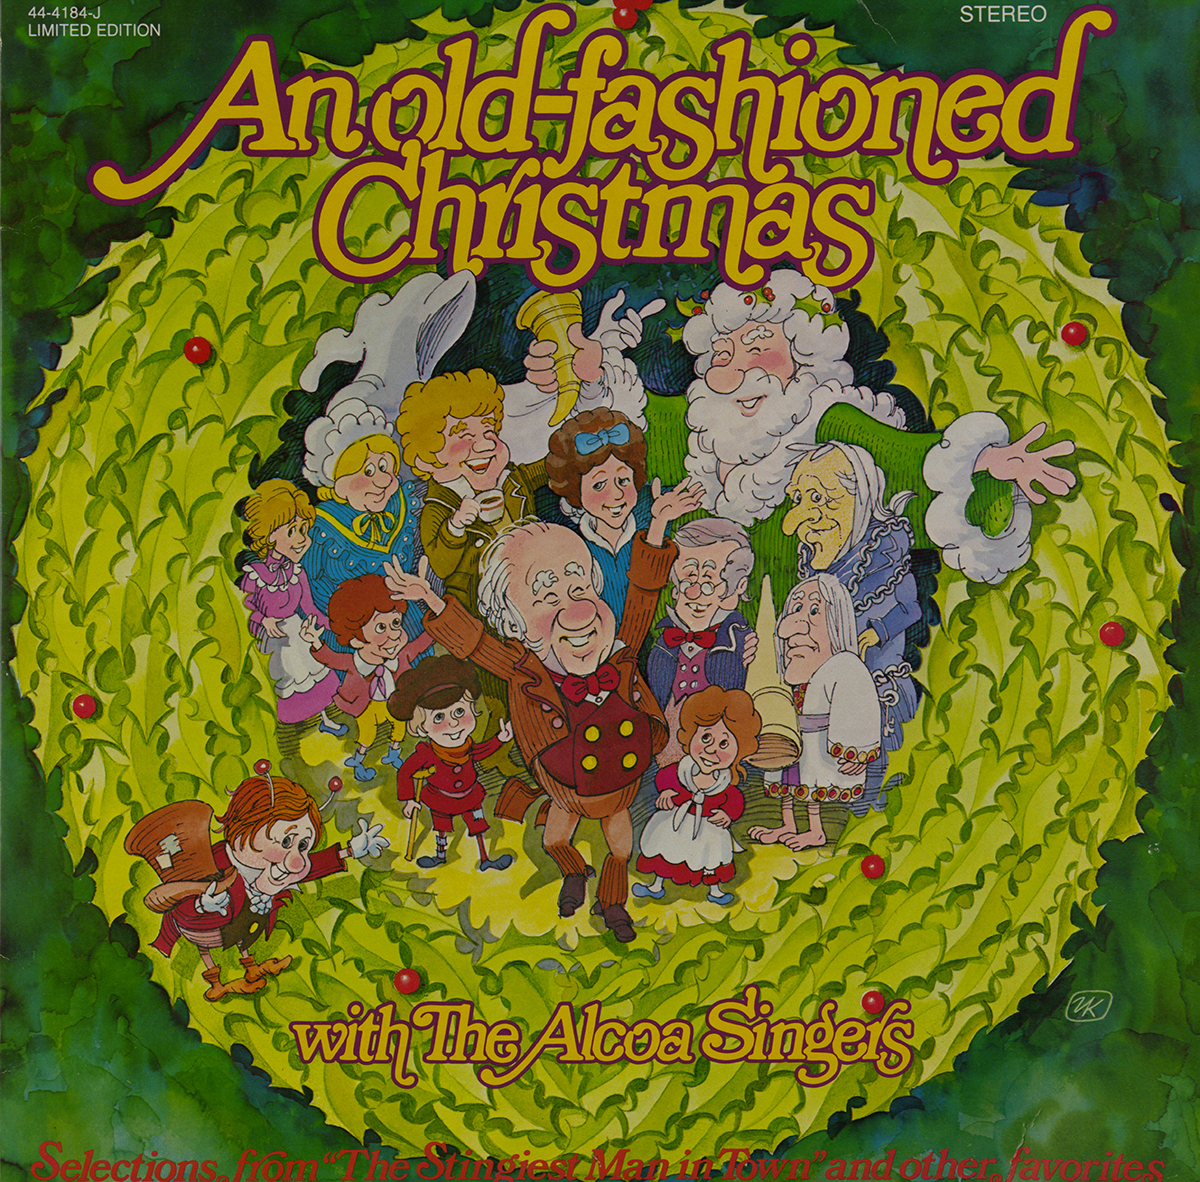 An Old-Fashioned Christmas with the Alcoa Singers, stereo LP jacket, 1979.